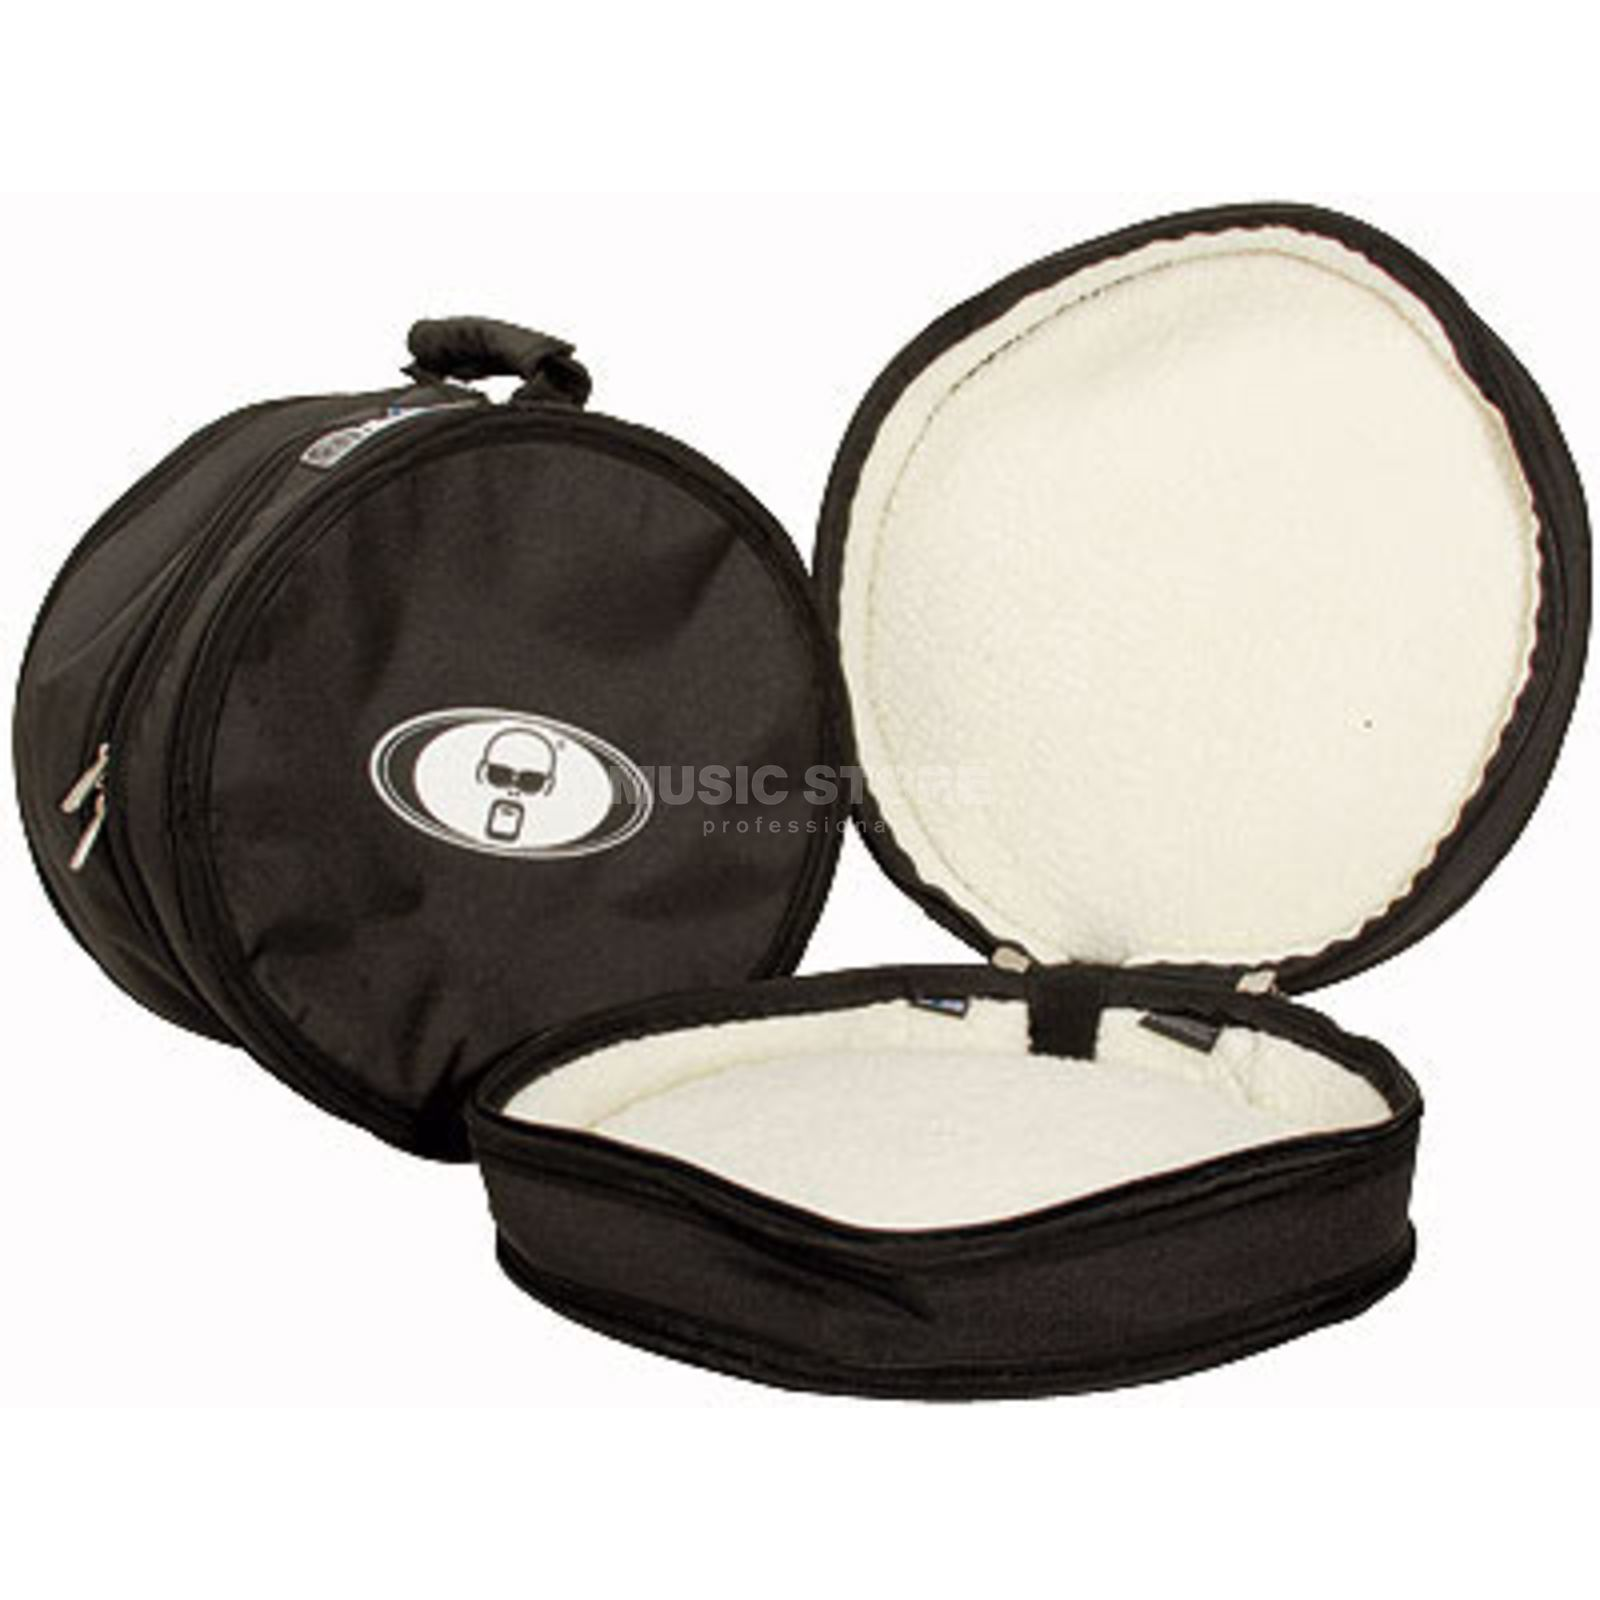 "Protection Racket FloorTom Bag 2014, 14""x14"" Zdjęcie produktu"